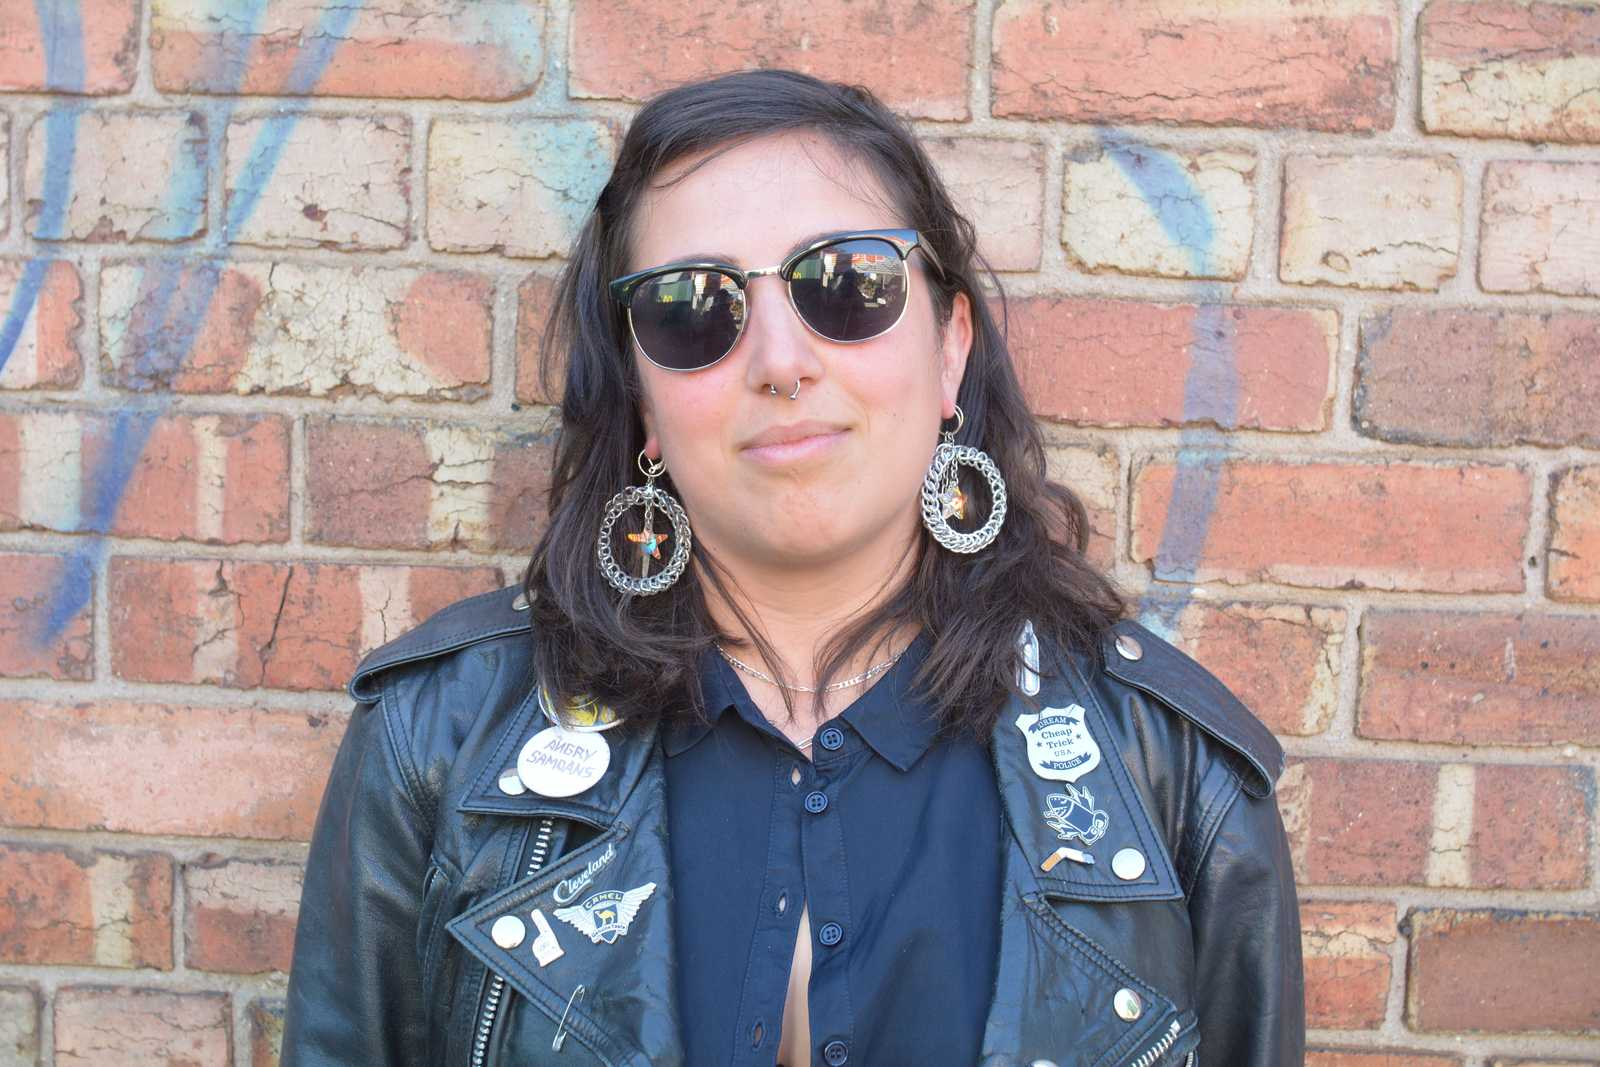 Photo of Christina wearing a black leather jacket, dark blue shirt and sunglasses, standing in front of a brick wall